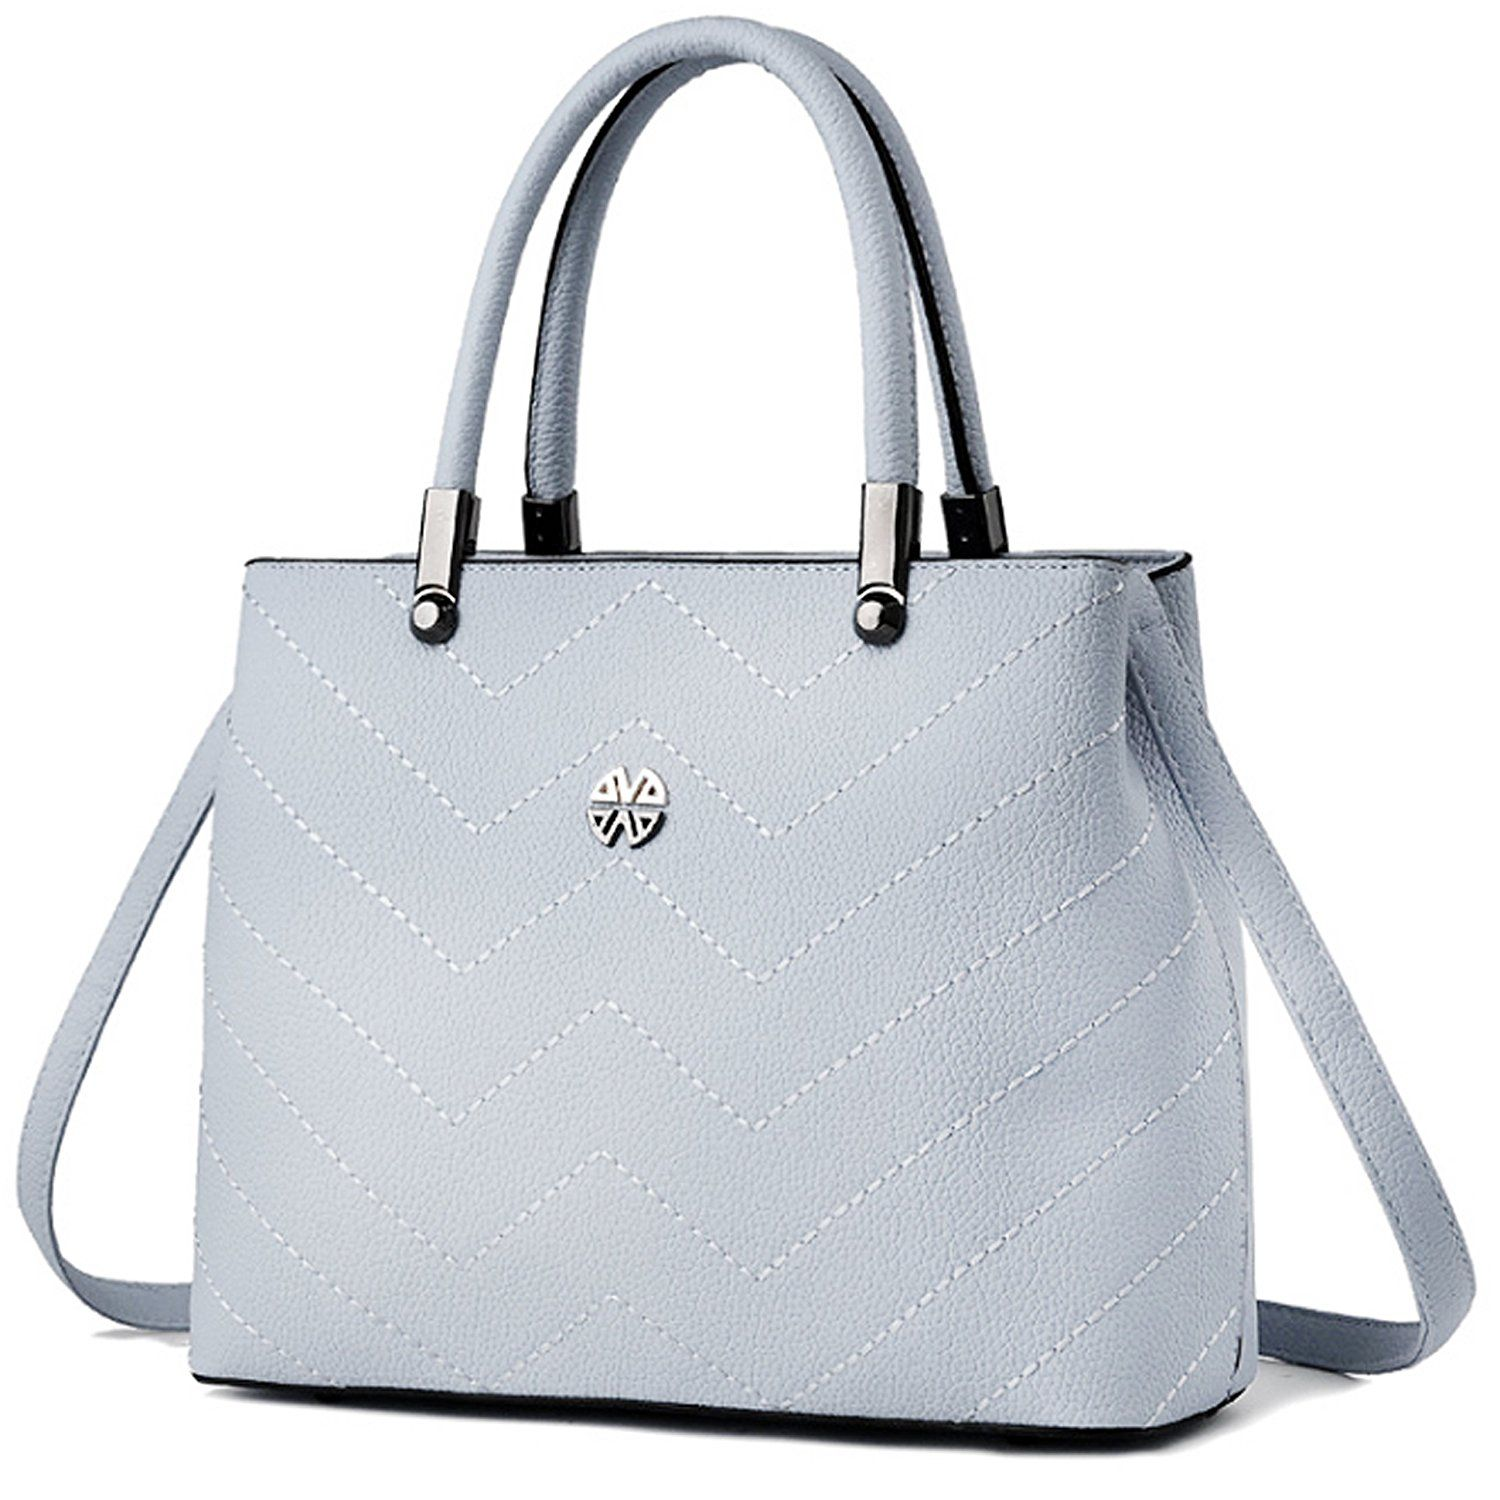 8ea891a955 Minch Women PU Leather Designer Tote Handbags Shoulder Bags for Work on  Clearance (Gray)